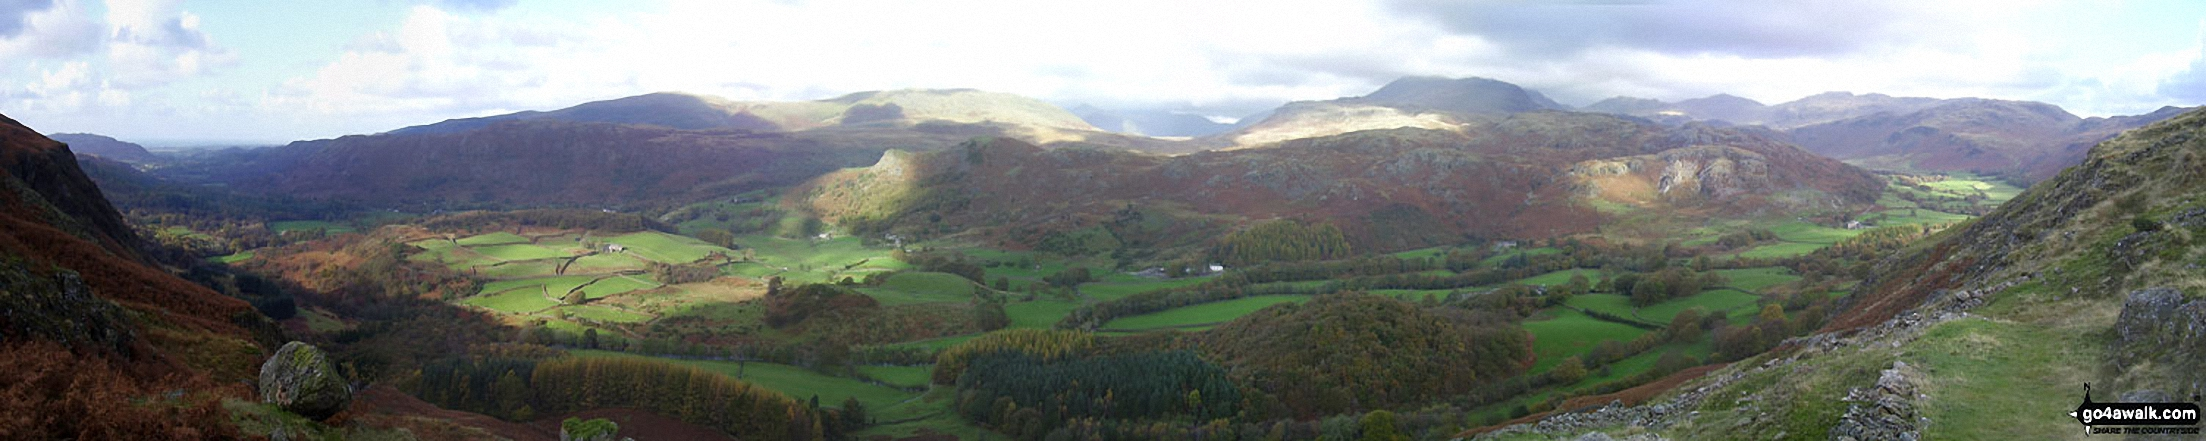 Eskdale from Birker Force (Waterfall) with Illgill Head (centre left) and Sca Fell (centre right) on the horizon